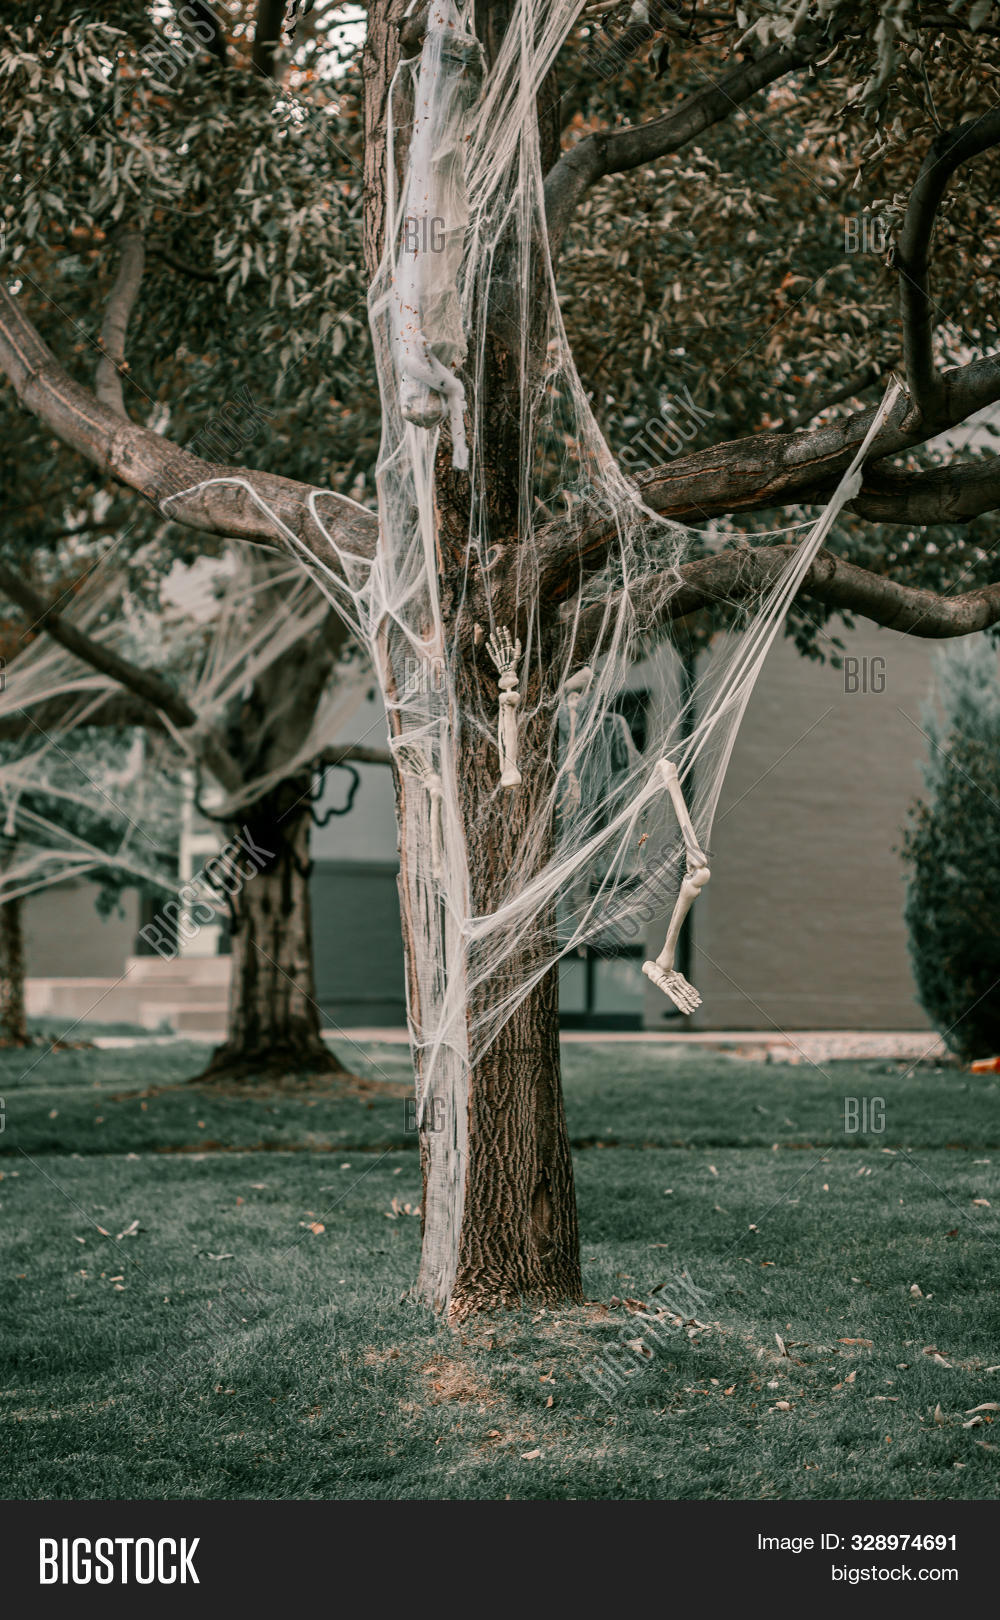 Scary Spooky Halloween Image & Free Trial